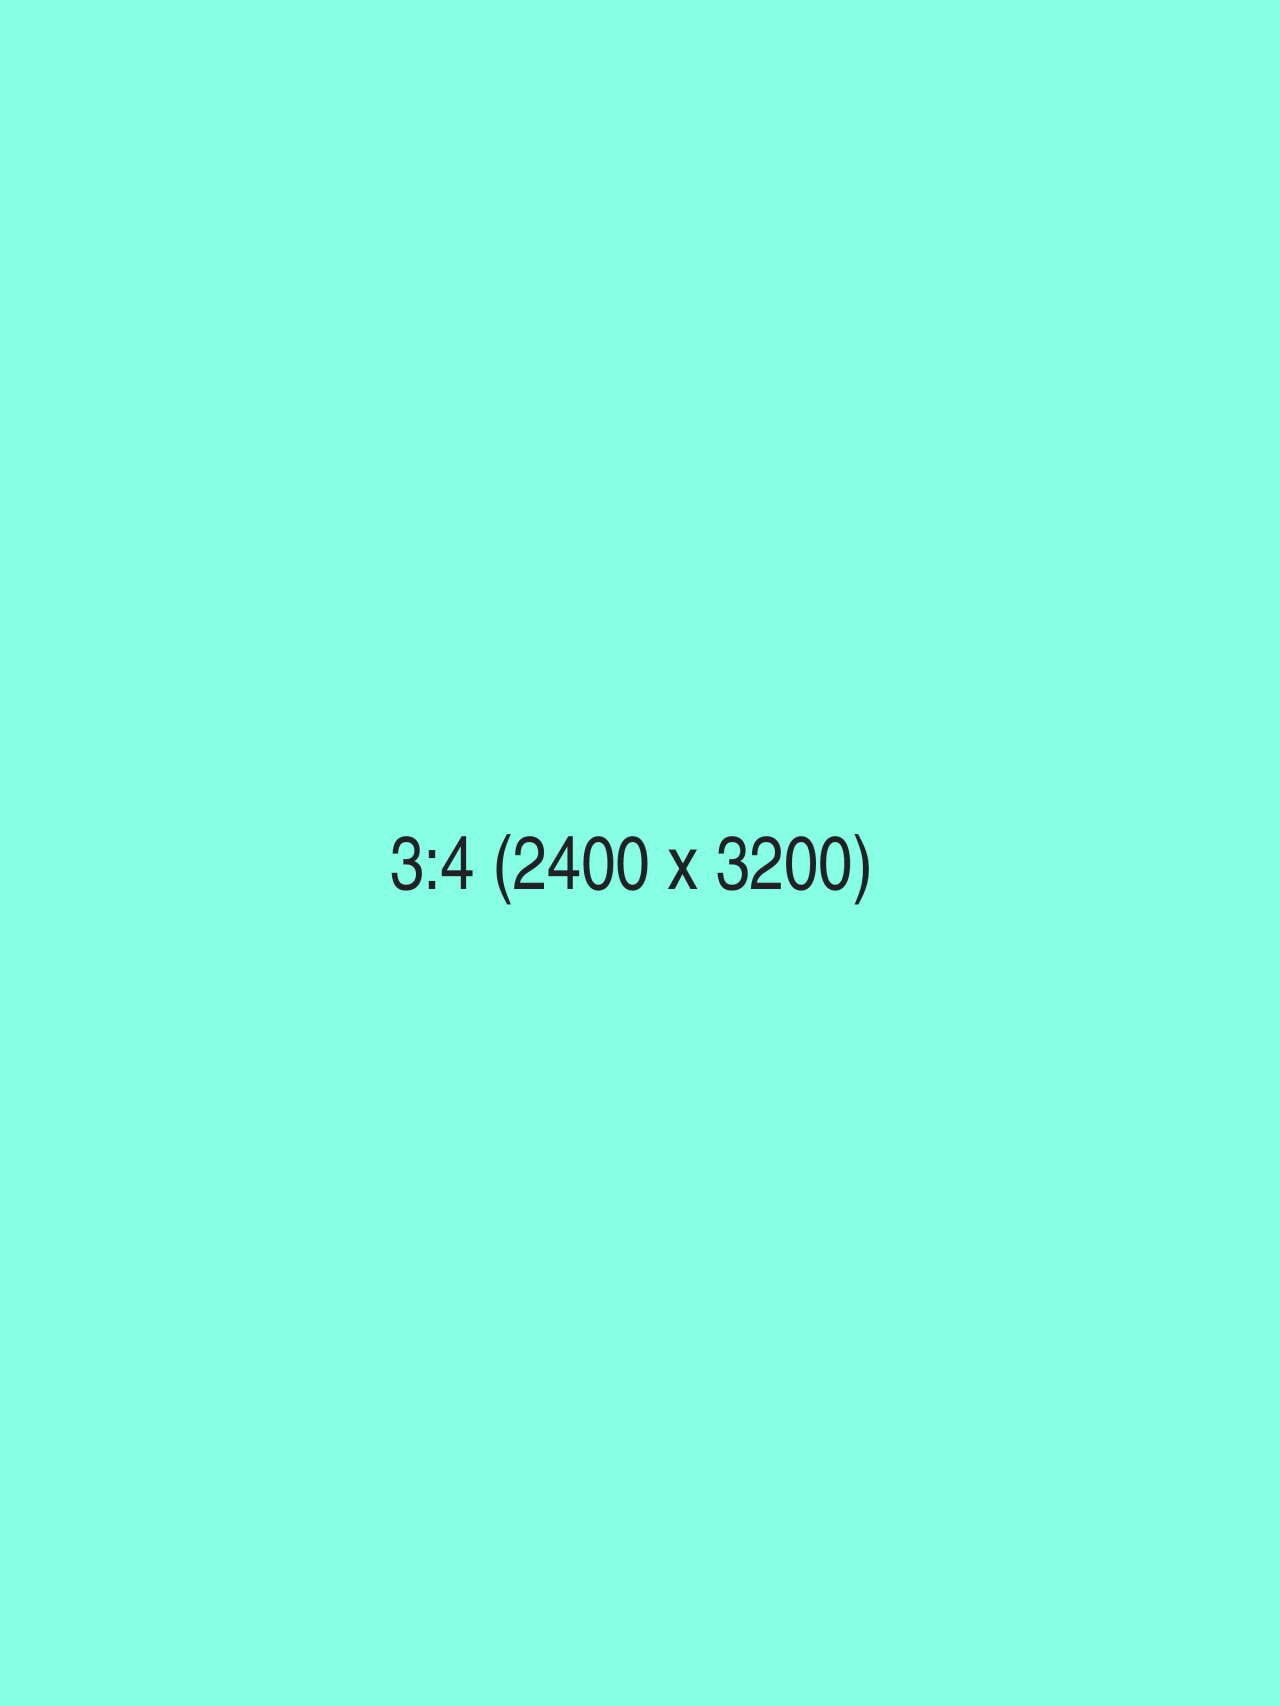 3_4___2400x3200___green.png